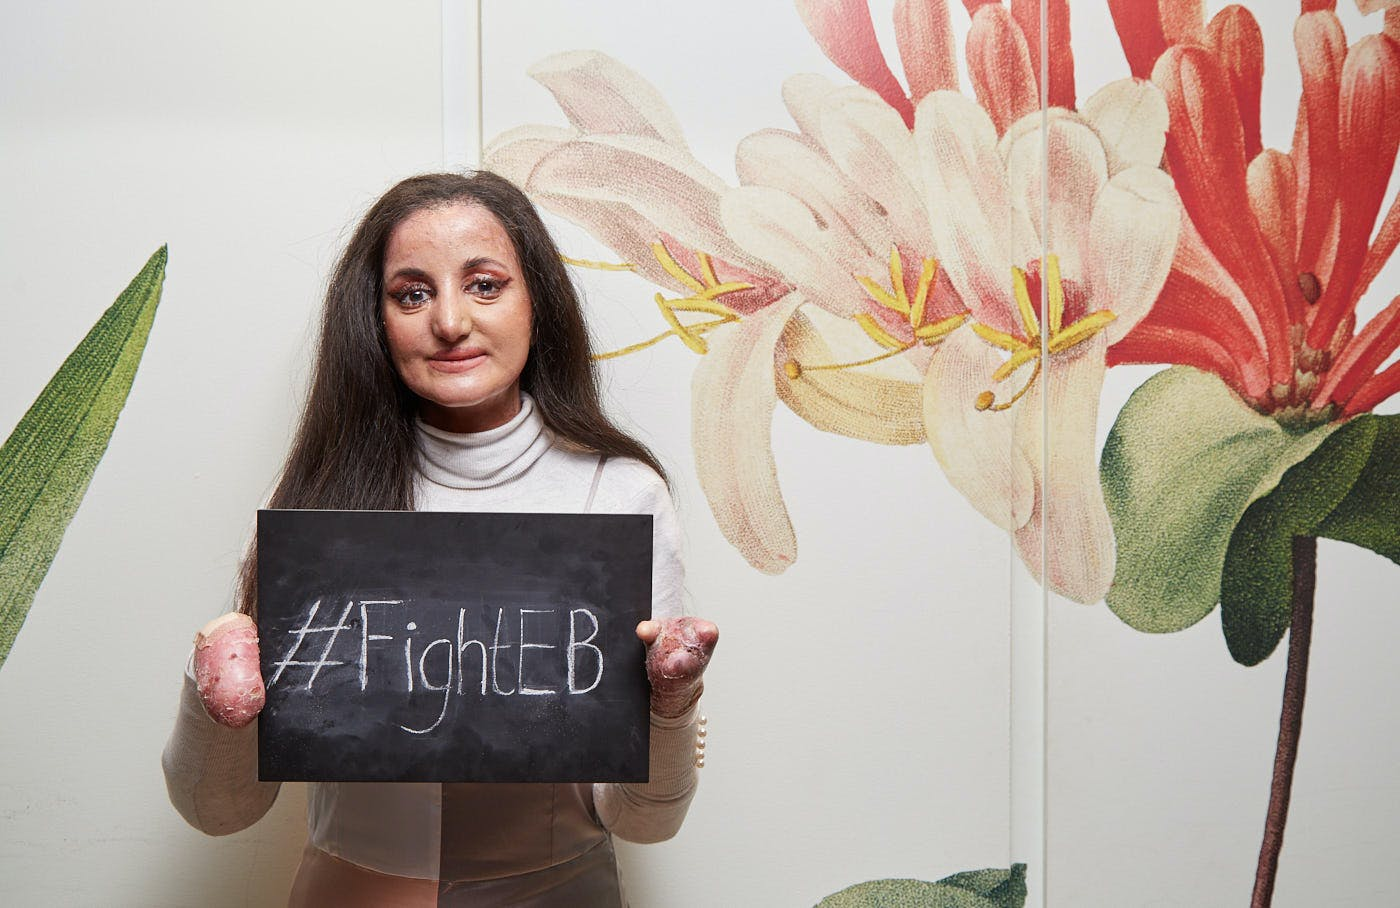 A girl holding a chalk board sign saying '#FightEB'. She is standing in front of a wall with a large flower design.